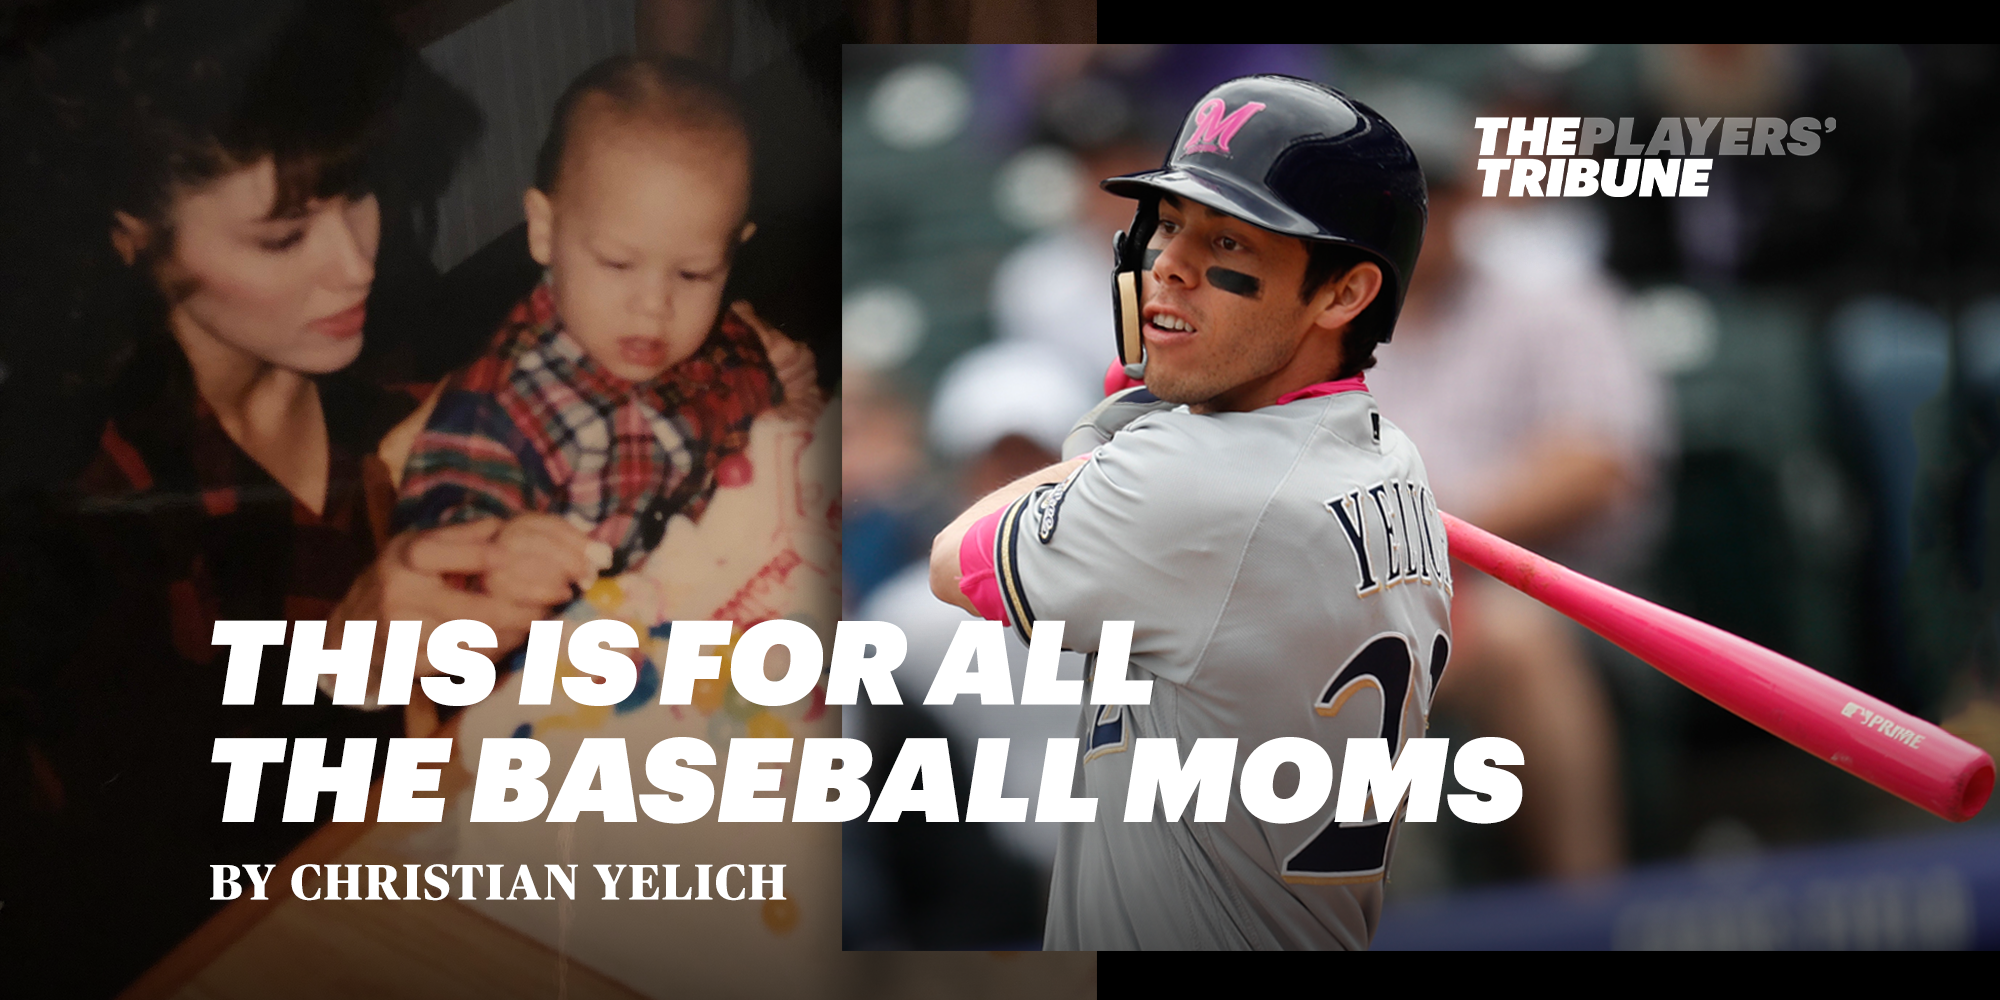 This Is for All the Baseball Moms